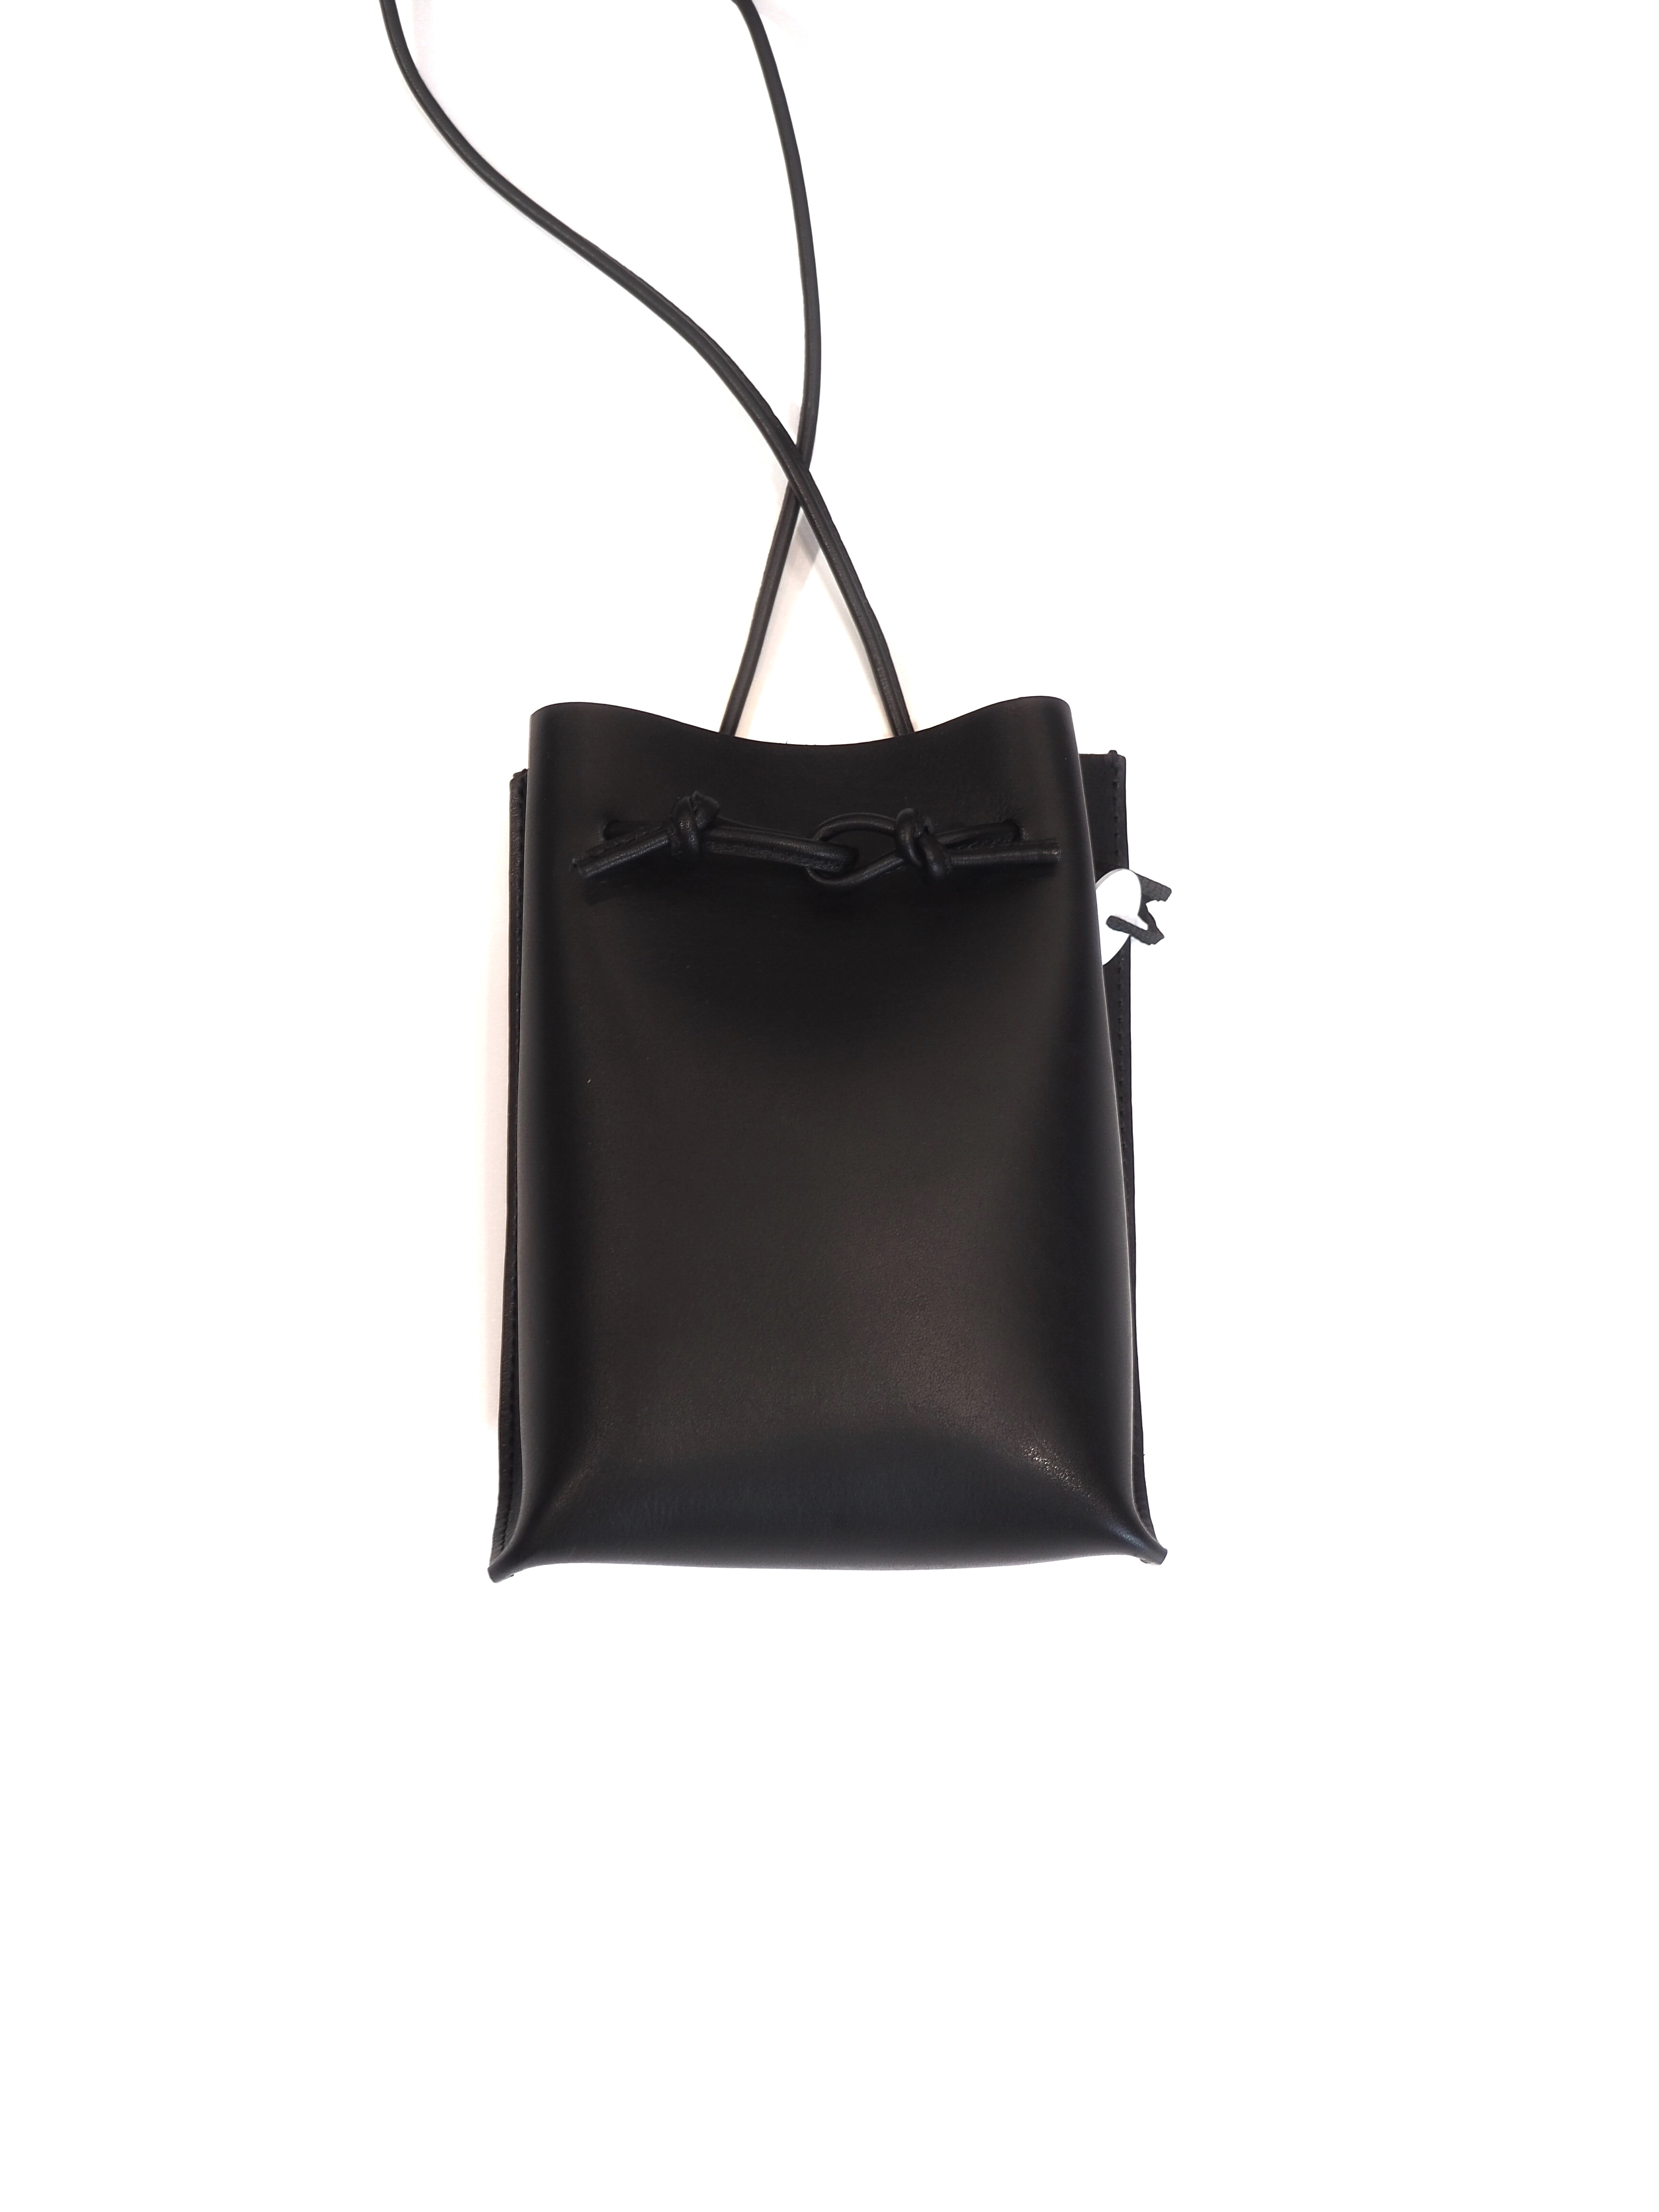 【MARROW】STRING POUCH